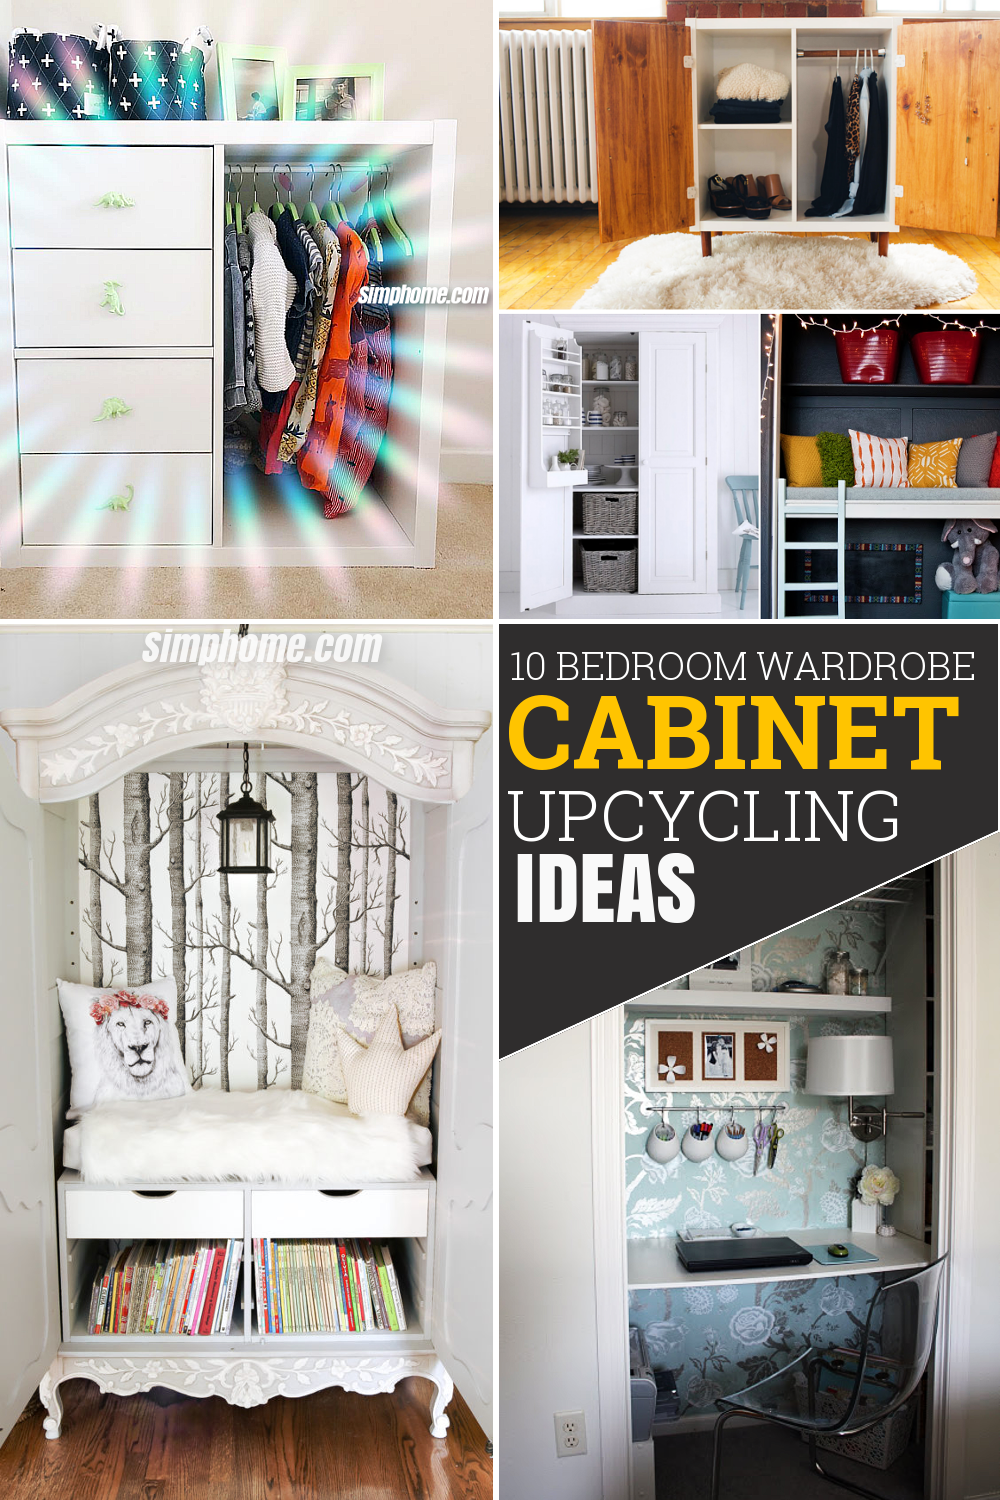 10 Bedroom Wardrobe and Cabinet Upcycled ideas via Simphome Pinterest Featured Image